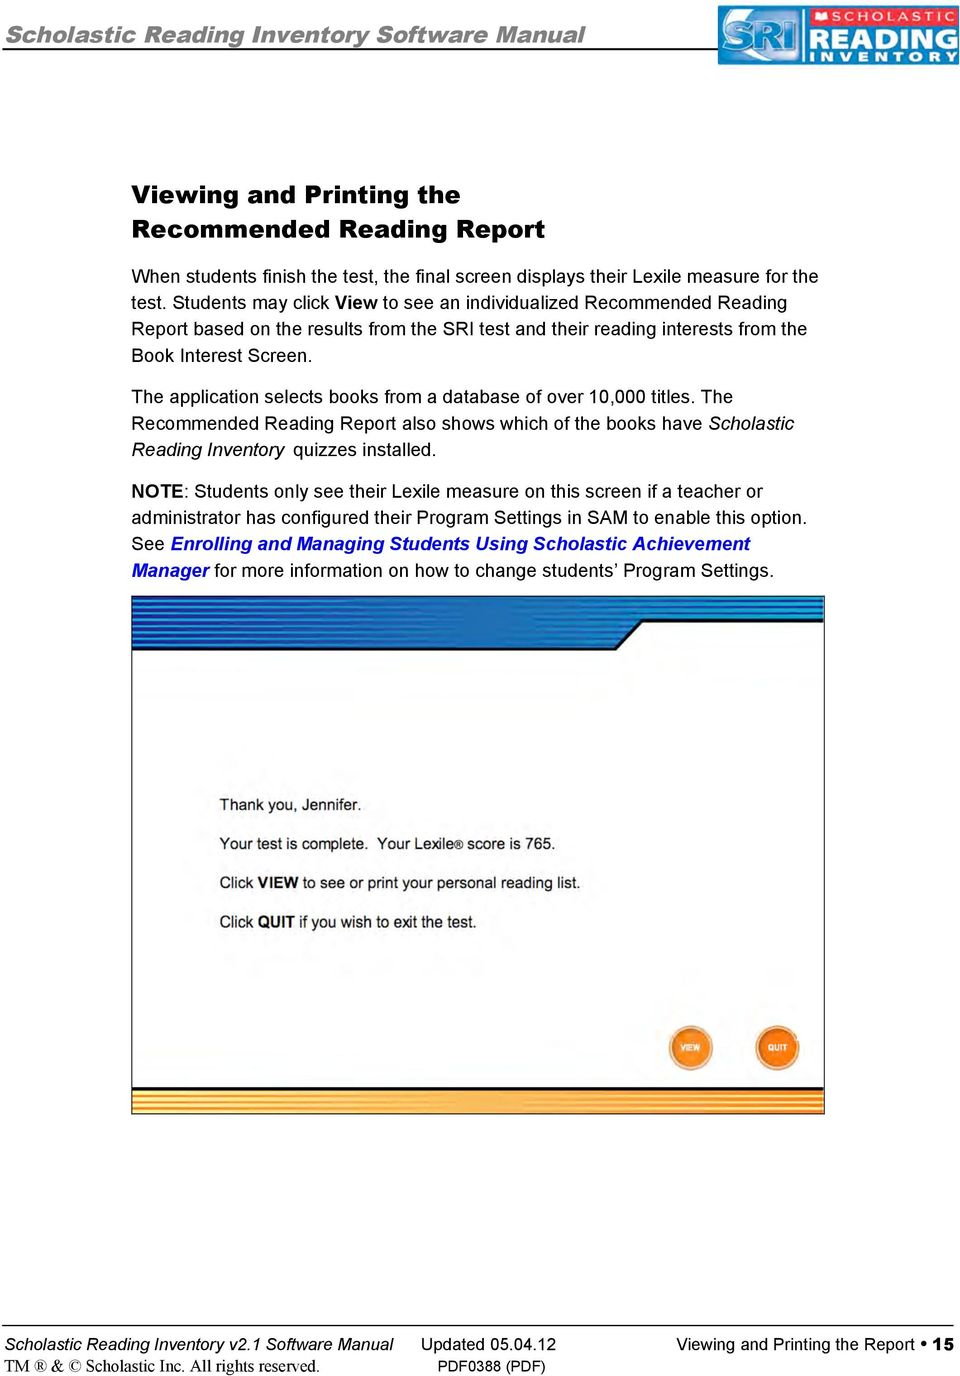 The application selects books from a database of over 10,000 titles. The Recommended Reading Report also shows which of the books have Scholastic Reading Inventory quizzes installed.